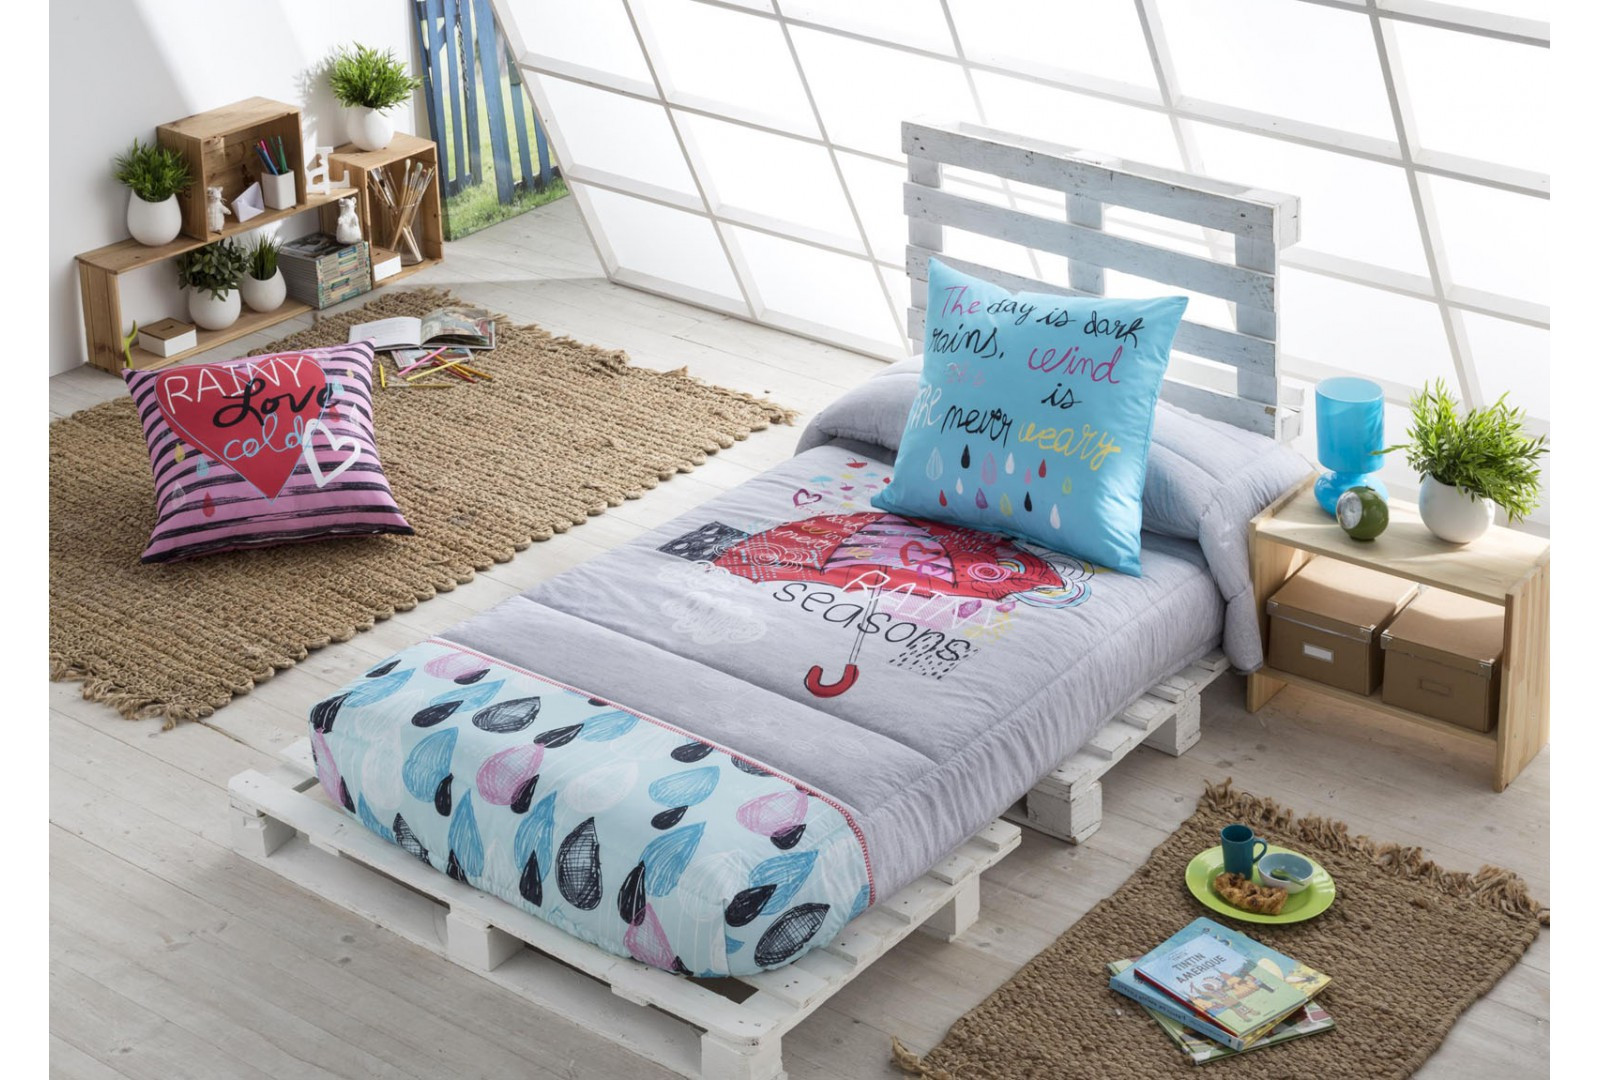 Edredon Ajustable Cama 90 Gran EdredÓn Ajustable Raining Descatalogado Decorajoven Of Edredon Ajustable Cama 90 Contemporáneo Edredón Ajustable Patch Reig Marti